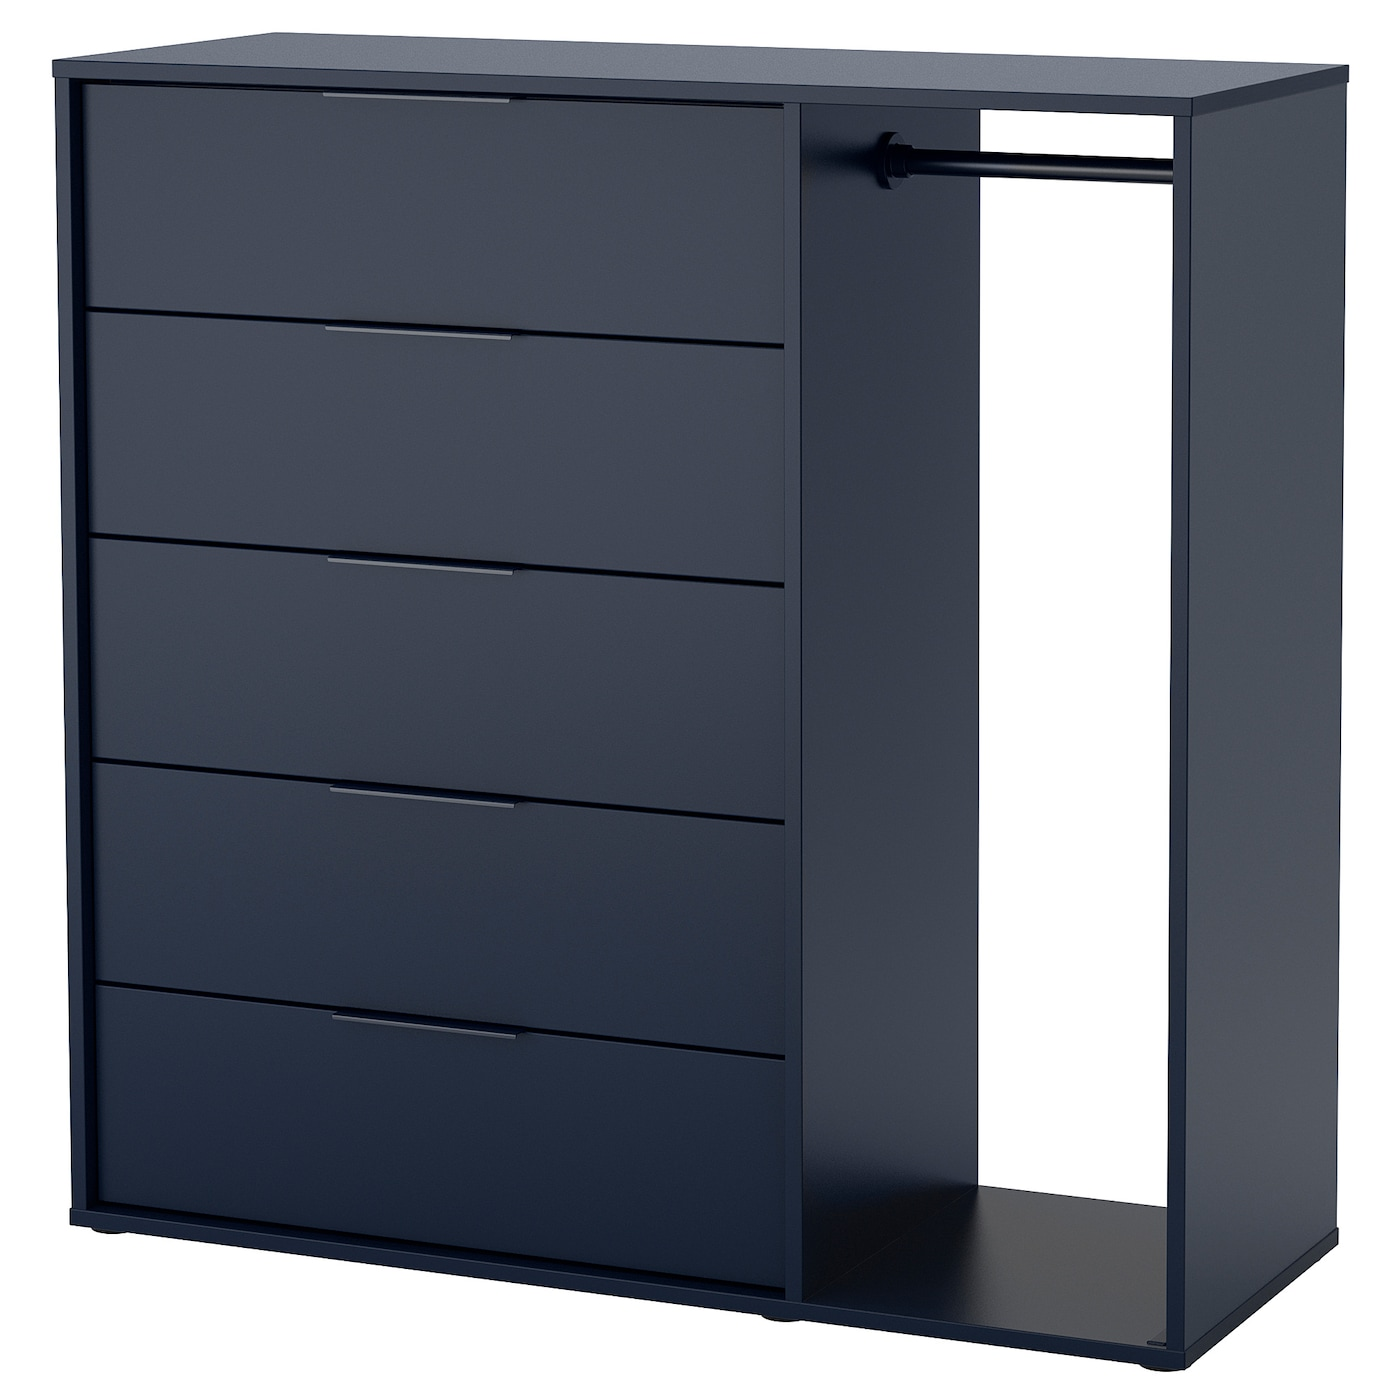 NORDMELA - Chest of drawers with clothes rail, black-blue